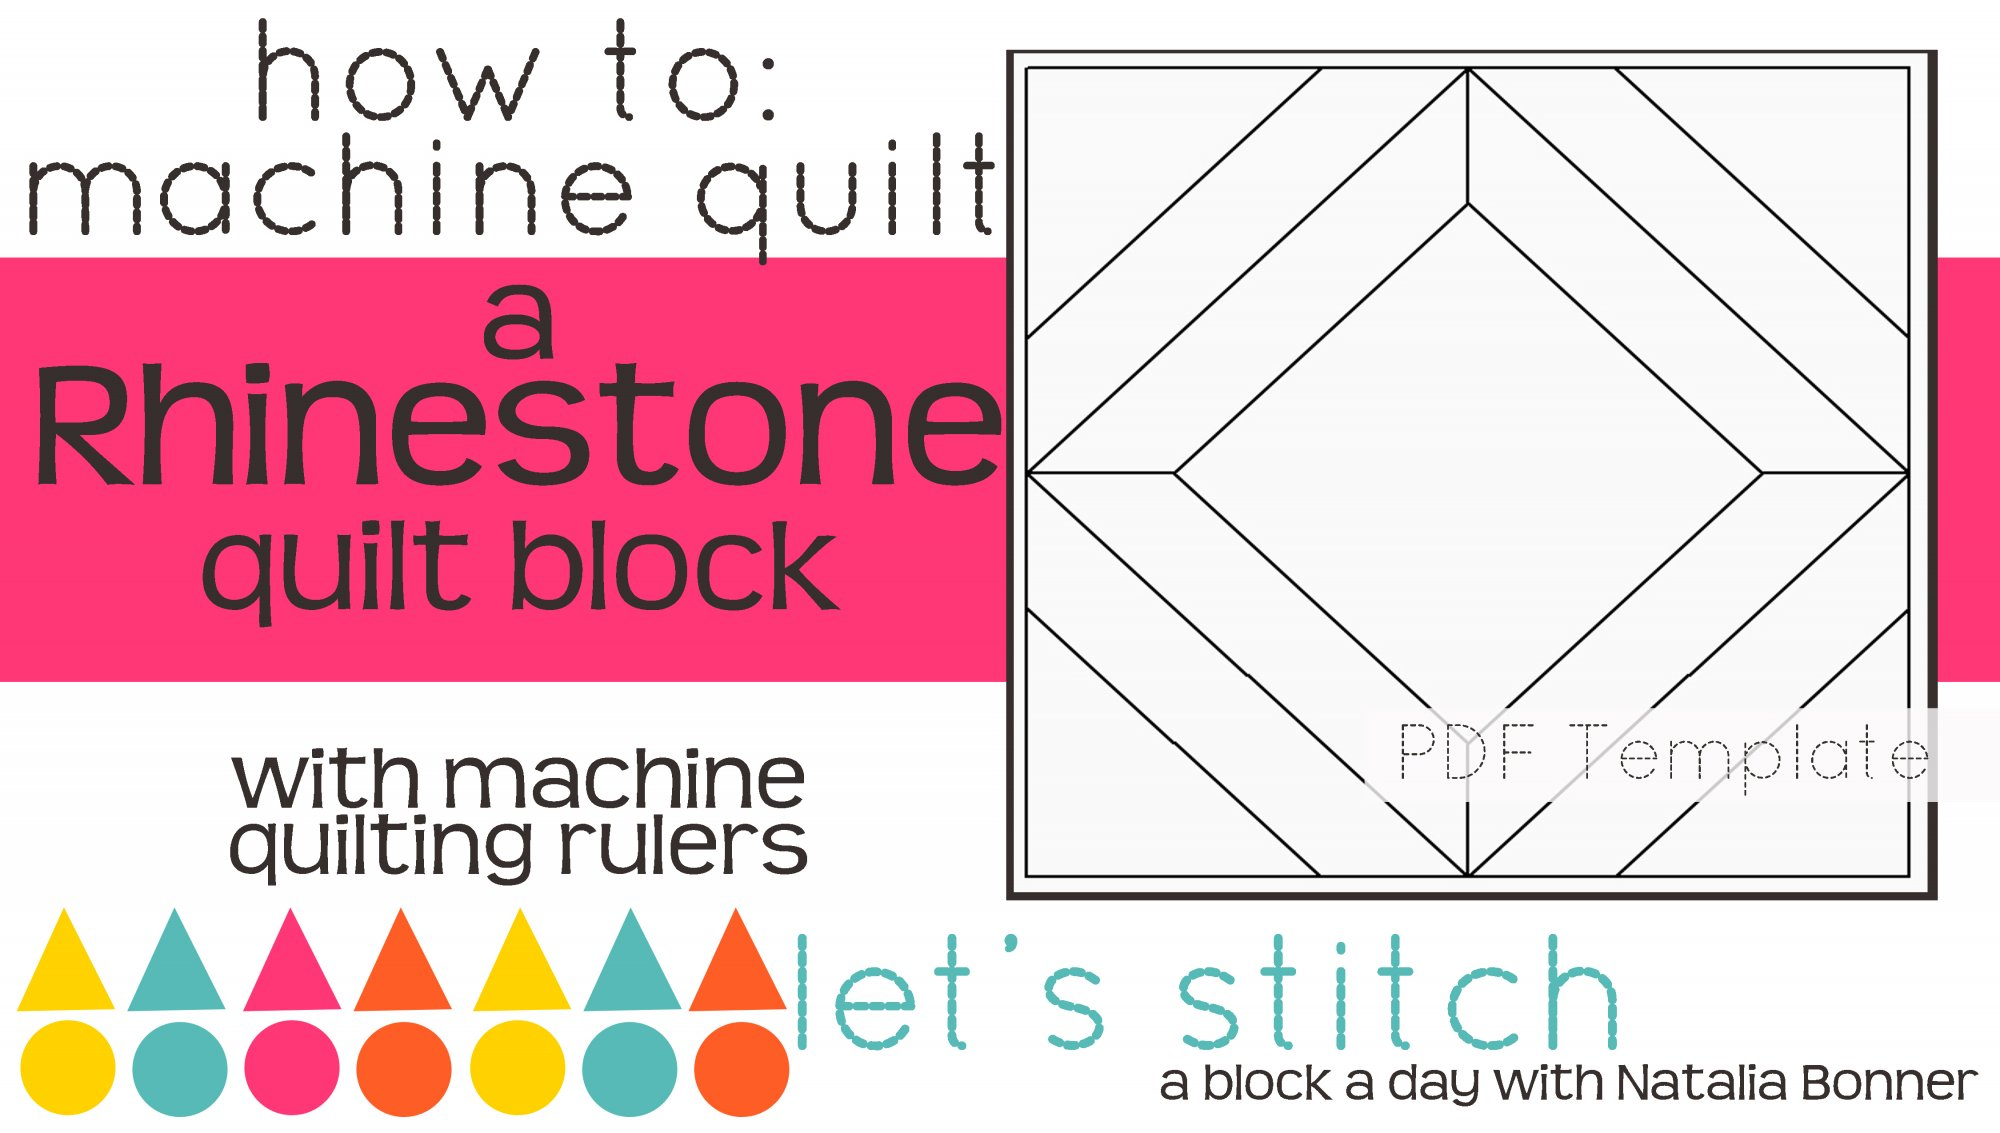 Let's Stitch - A Block a Day With Natalia Bonner - PDF - Rhinestone